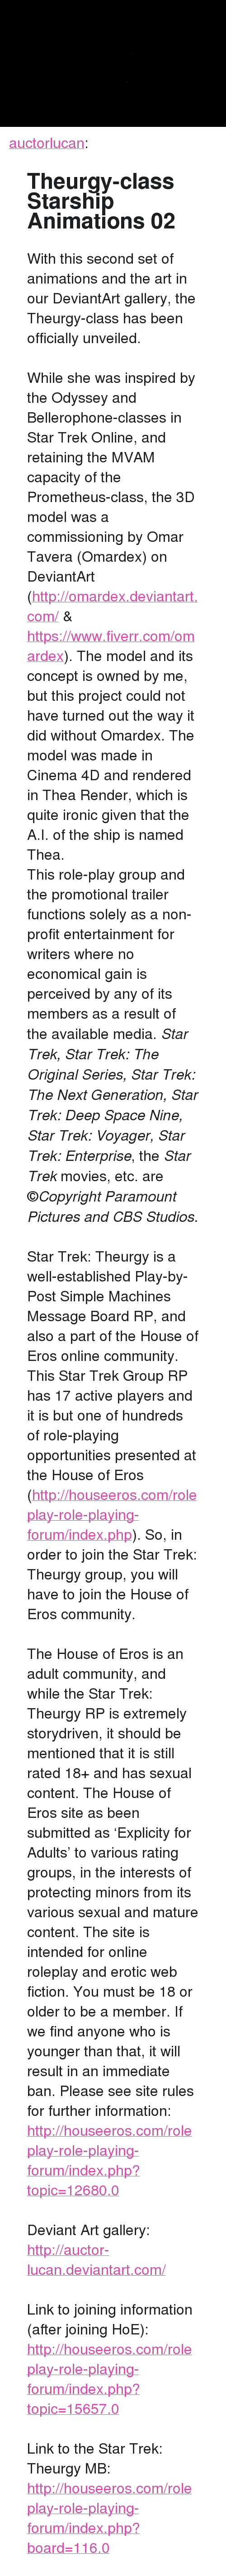 """star trek the next generation: <p><a href=""""http://auctorlucan.tumblr.com/post/142372418688"""" class=""""tumblr_blog"""">auctorlucan</a>:</p>  <blockquote><h2>Theurgy-class Starship Animations 02</h2><p>With this second set of animations and the art in our DeviantArt gallery, the Theurgy-class has been officially unveiled.<br/><br/>While she was inspired by the Odyssey and Bellerophone-classes in Star Trek Online, and retaining the MVAM capacity of the Prometheus-class, the 3D model was a commissioning by Omar Tavera (Omardex) on DeviantArt (<a href=""""http://t.umblr.com/redirect?z=http%3A%2F%2Fomardex.deviantart.com%2F&amp;t=YWJmMWFlNThiNGUzZDY1MDNhYzExYzAxNTgwYjA1YTk0YTNmNDljOCxJS3FuRHNFUw%3D%3D"""">http://omardex.deviantart.com/</a> &amp; <a href=""""http://t.umblr.com/redirect?z=https%3A%2F%2Fwww.fiverr.com%2Fomardex&amp;t=NzFmYmJlZWMzYWZjNjQ2NDRhOGY4MzlhOTY3YWM2NTc1OThmOWQ3YyxJS3FuRHNFUw%3D%3D"""">https://www.fiverr.com/omardex</a>). The model and its concept is owned by me, but this project could not have turned out the way it did without Omardex. The model was made in Cinema 4D and rendered in Thea Render, which is quite ironic given that the A.I. of the ship is named Thea.</p><p>This role-play group and the promotional trailer functions solely as a non-profit entertainment for writers where no economical gain is perceived by any of its members as a result of the available media. <i>Star Trek, Star Trek: The Original Series, Star Trek: The Next Generation, Star Trek: Deep Space Nine, Star Trek: Voyager, Star Trek: Enterprise</i>, the <i>Star Trek </i>movies, etc. are ©<i>Copyright Paramount Pictures and CBS Studios.</i><br/><br/>Star Trek: Theurgy is a well-established Play-by-Post Simple Machines Message Board RP, and also a part of the House of Eros online community. This Star Trek Group RP has 17 active players and it is but one of hundreds of role-playing opportunities presented at the House of Eros (<a href=""""http://t.umblr.com/redirect?z=http%3A%2F%2Fhouseeros.com%2Frolepla"""